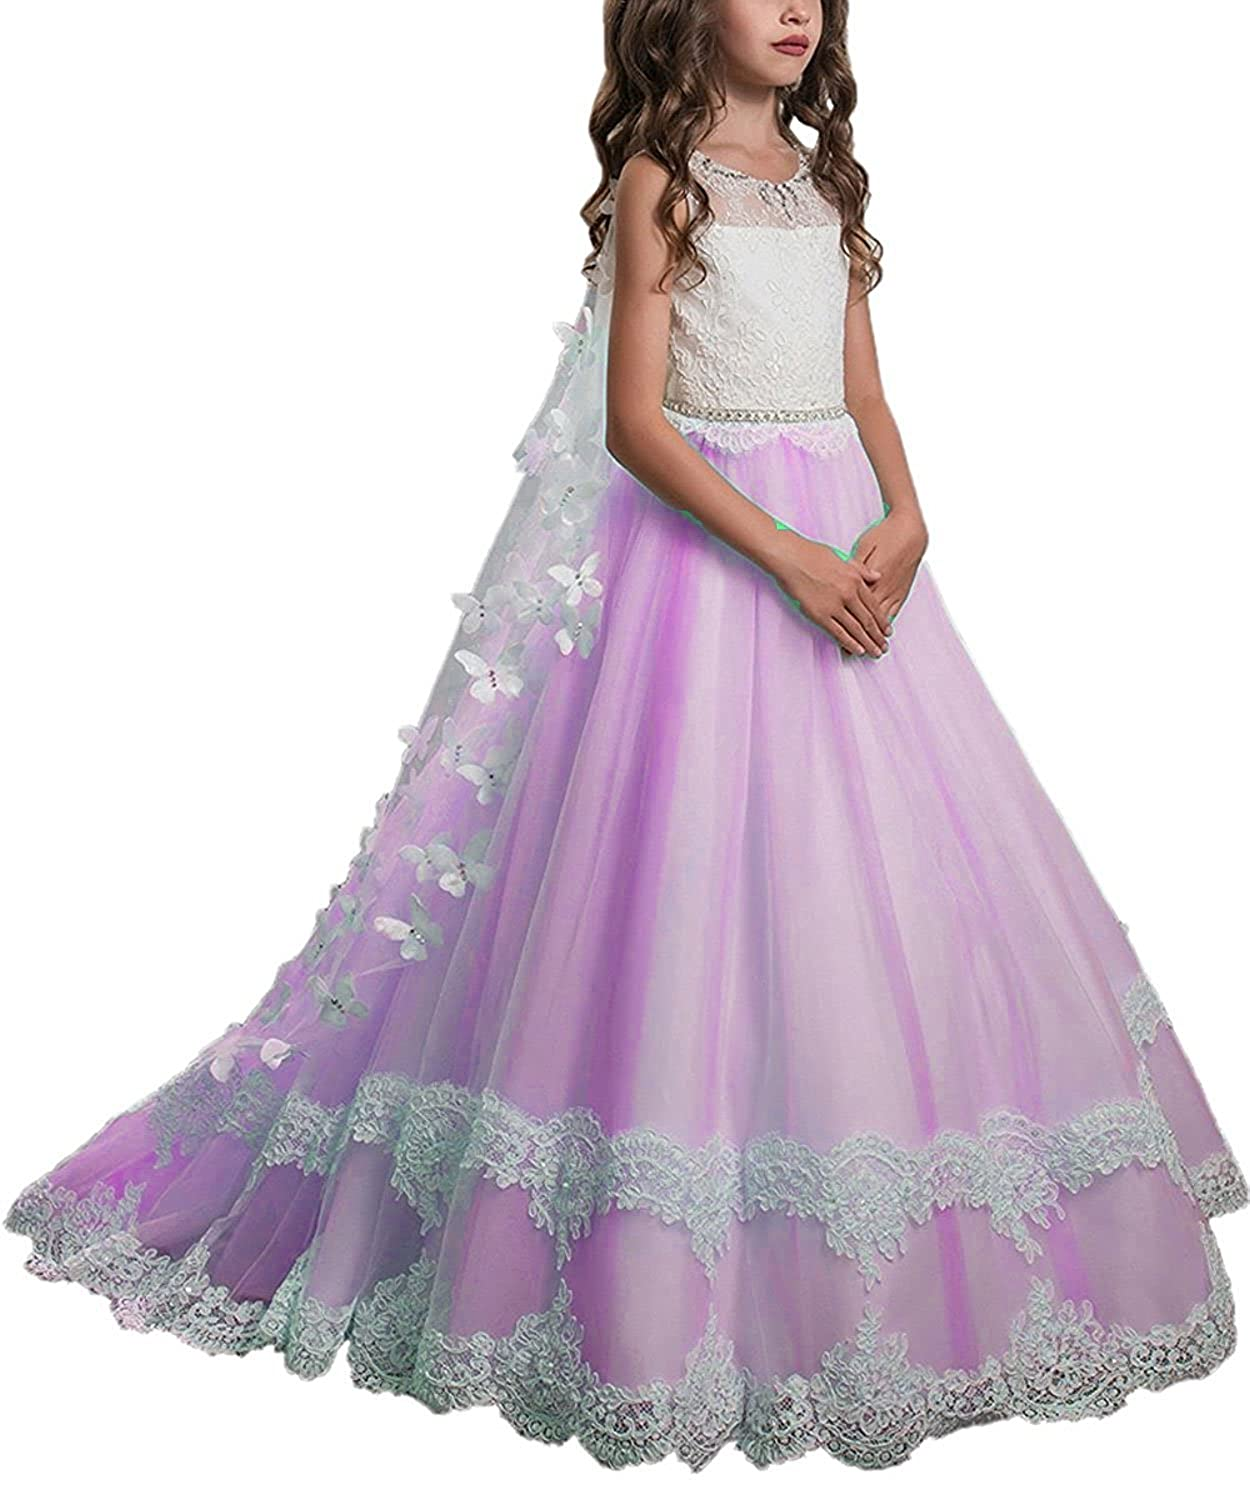 SHENLINQIJ Flower Girl Dress Juniors Long Lace Wedding Gown with Butterfly